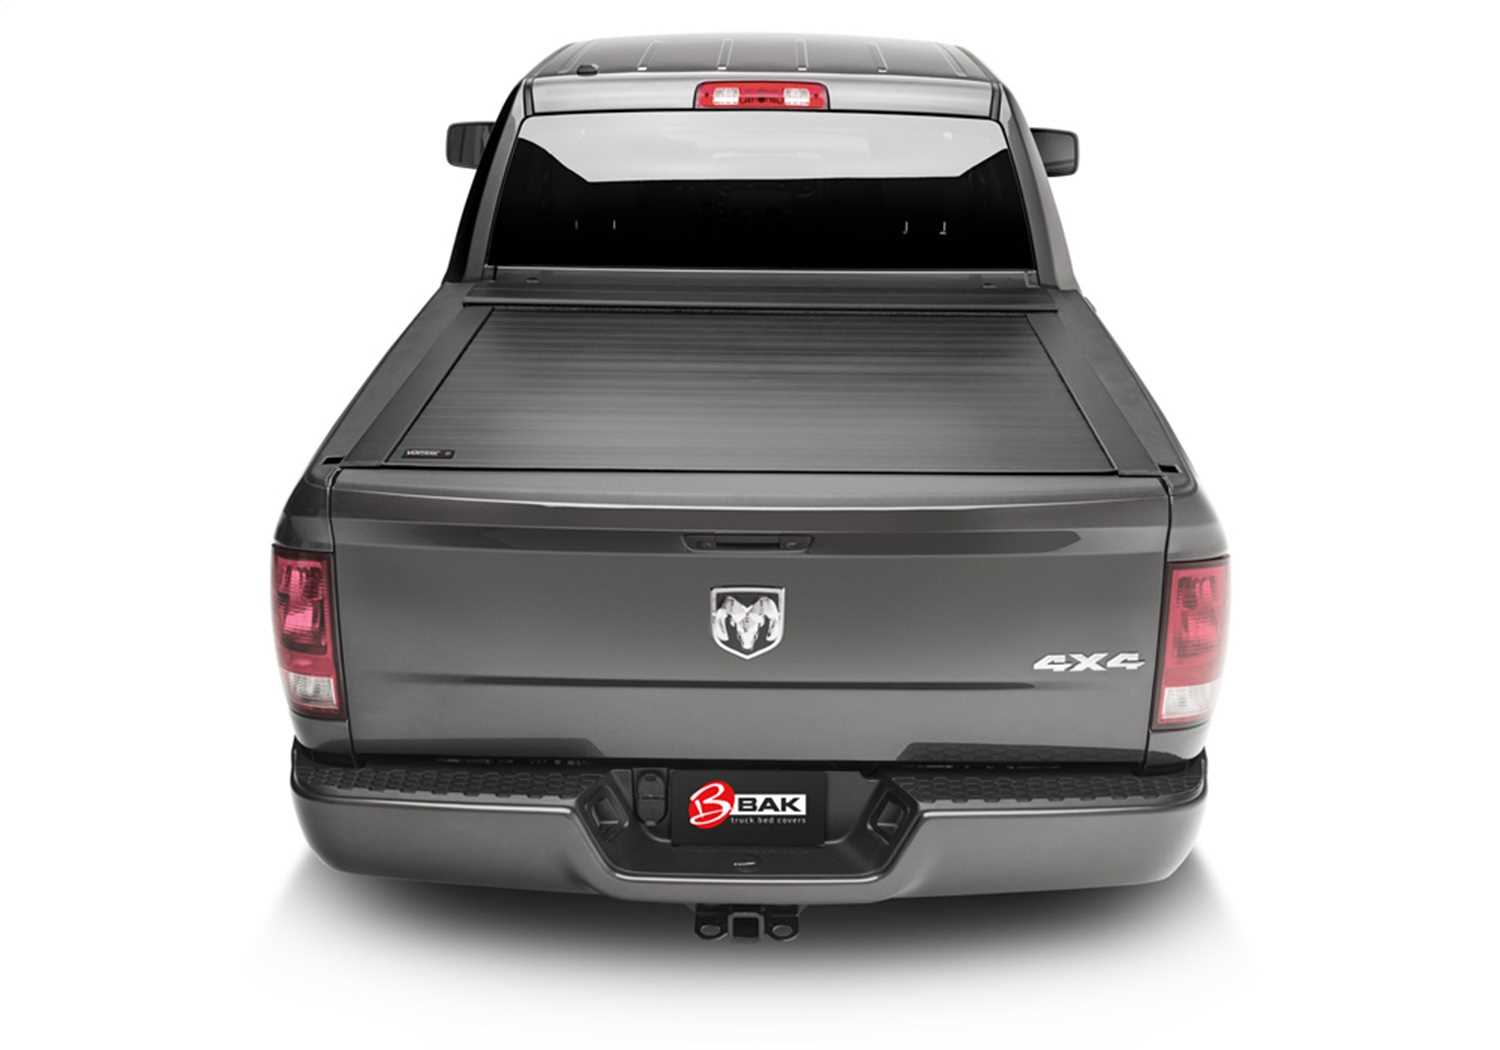 R25207 Bak Industries Vortrak Retractable Truck Bed Cover